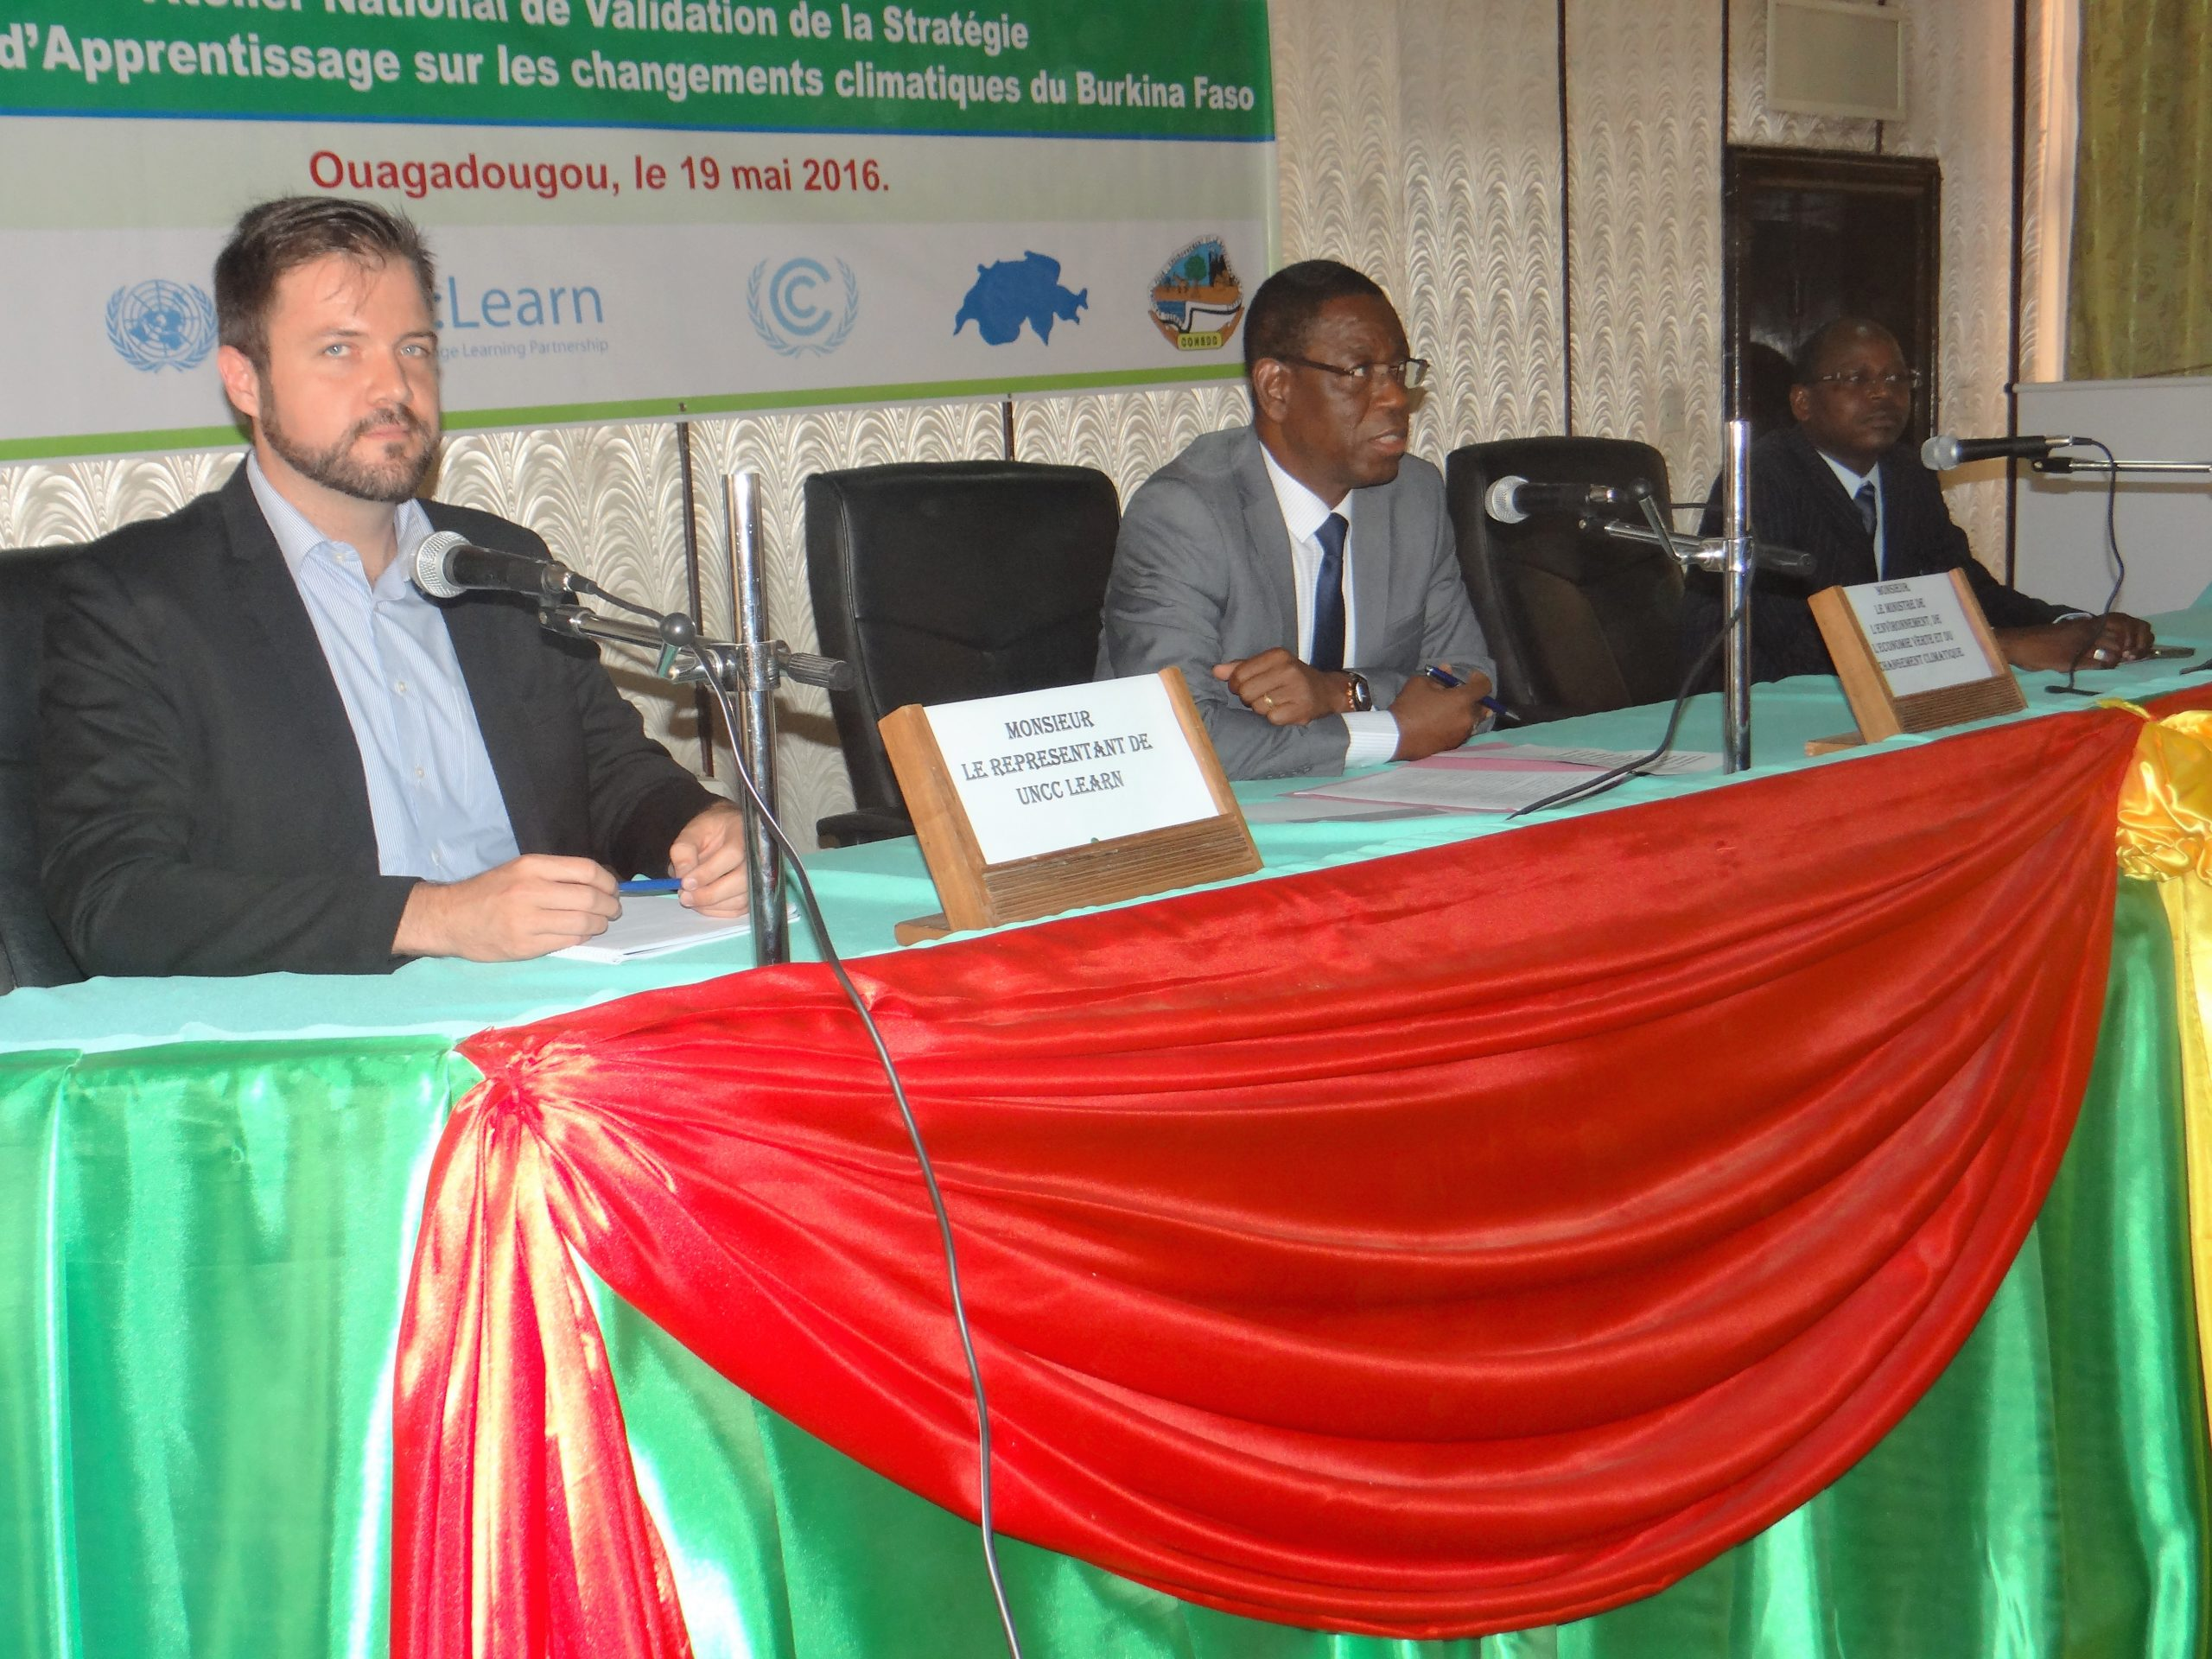 From left to right, Mr. Vincens Côté, Secretariat UN CC:Learn, Minister Nestor Bassiere, and Mr. Pamoussa Ouedraogo, Technical Coordinator of Programs SP/CNDD